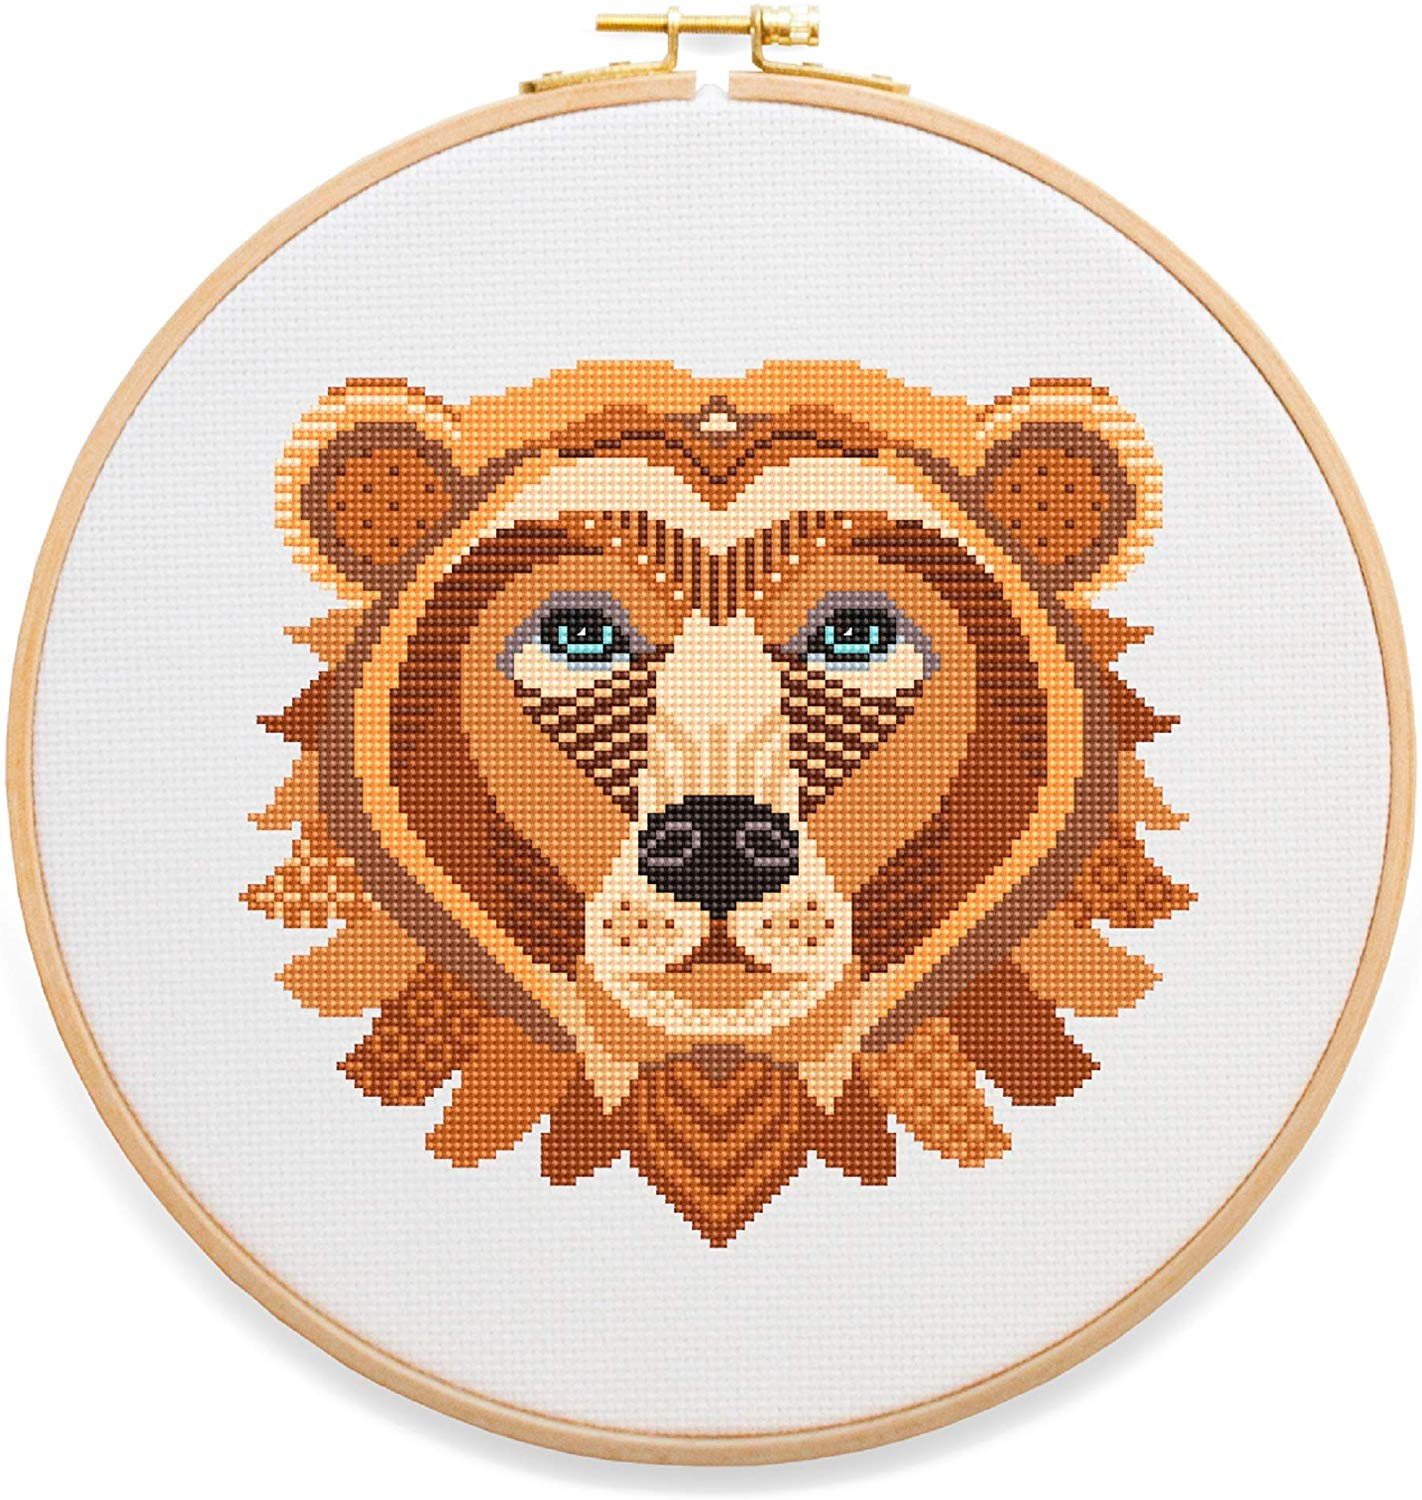 Bear Mandala Cross Stitch Kit by Stitchering